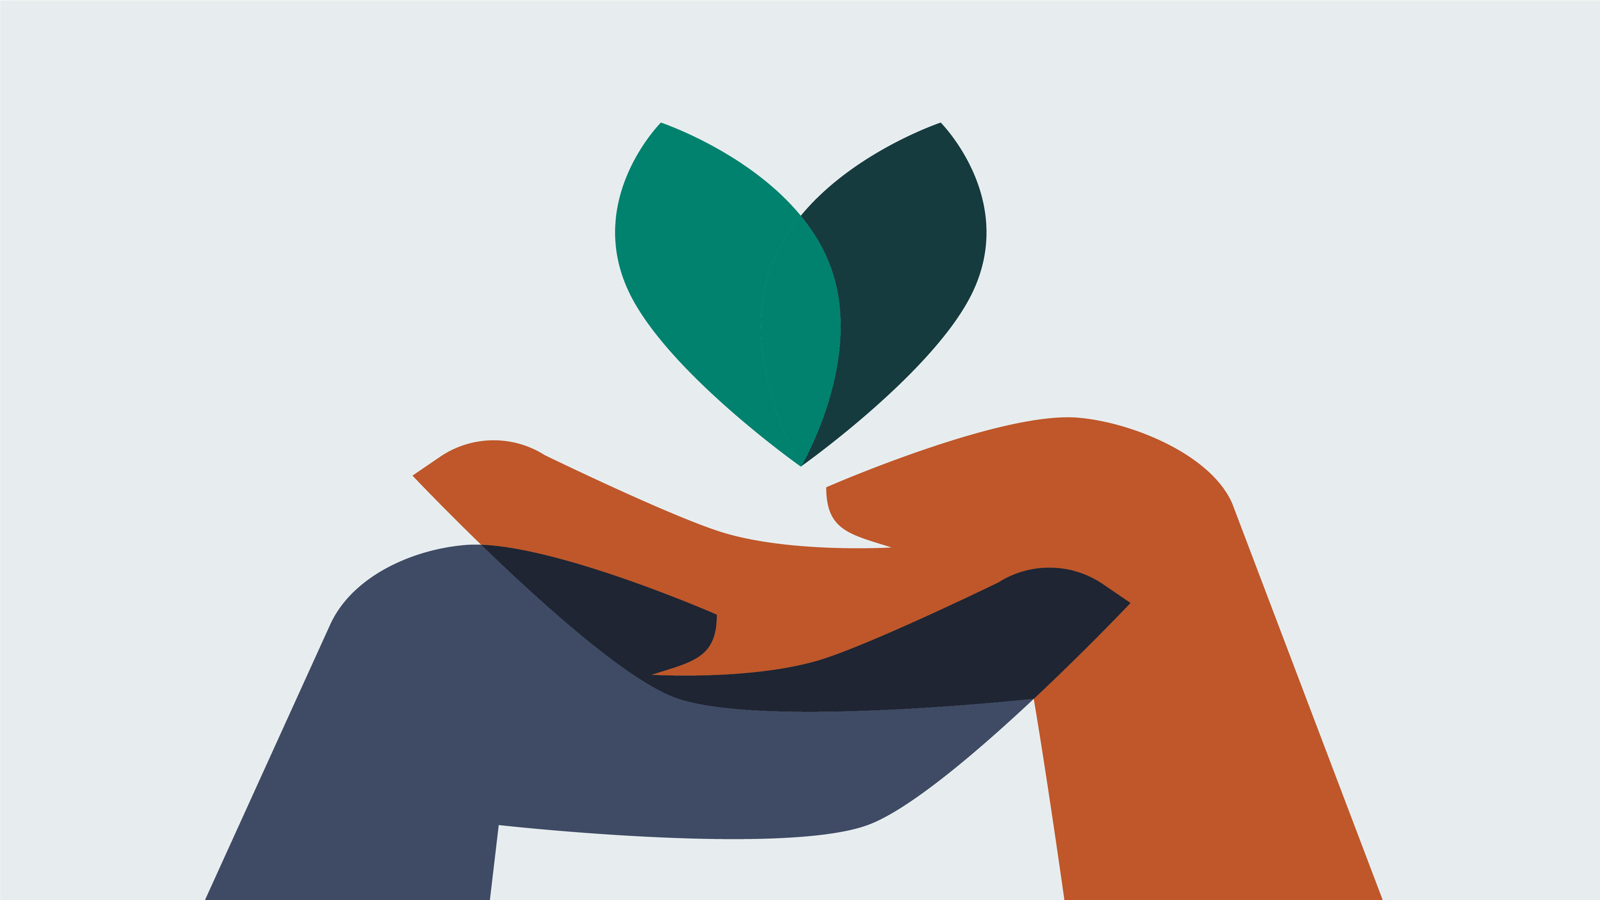 An illustration of two hands, one dark blue, the other burnt orange, lifting up a green leaf symbol.